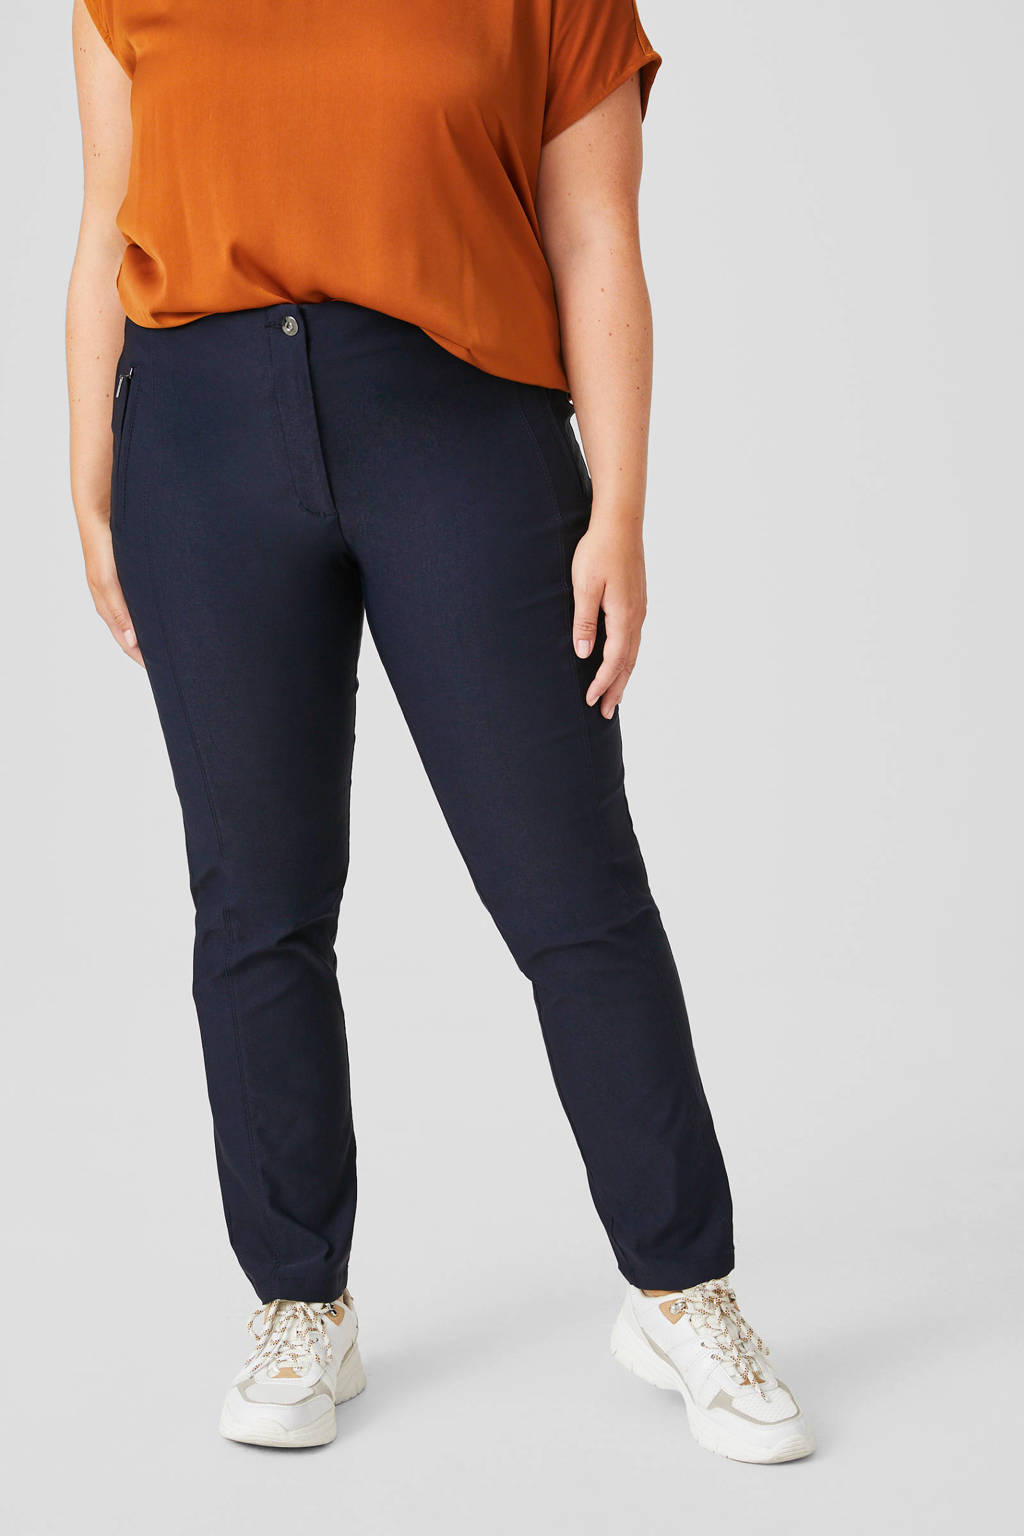 C&A XL Yessica slim fit broek donkerblauw, Donkerblauw